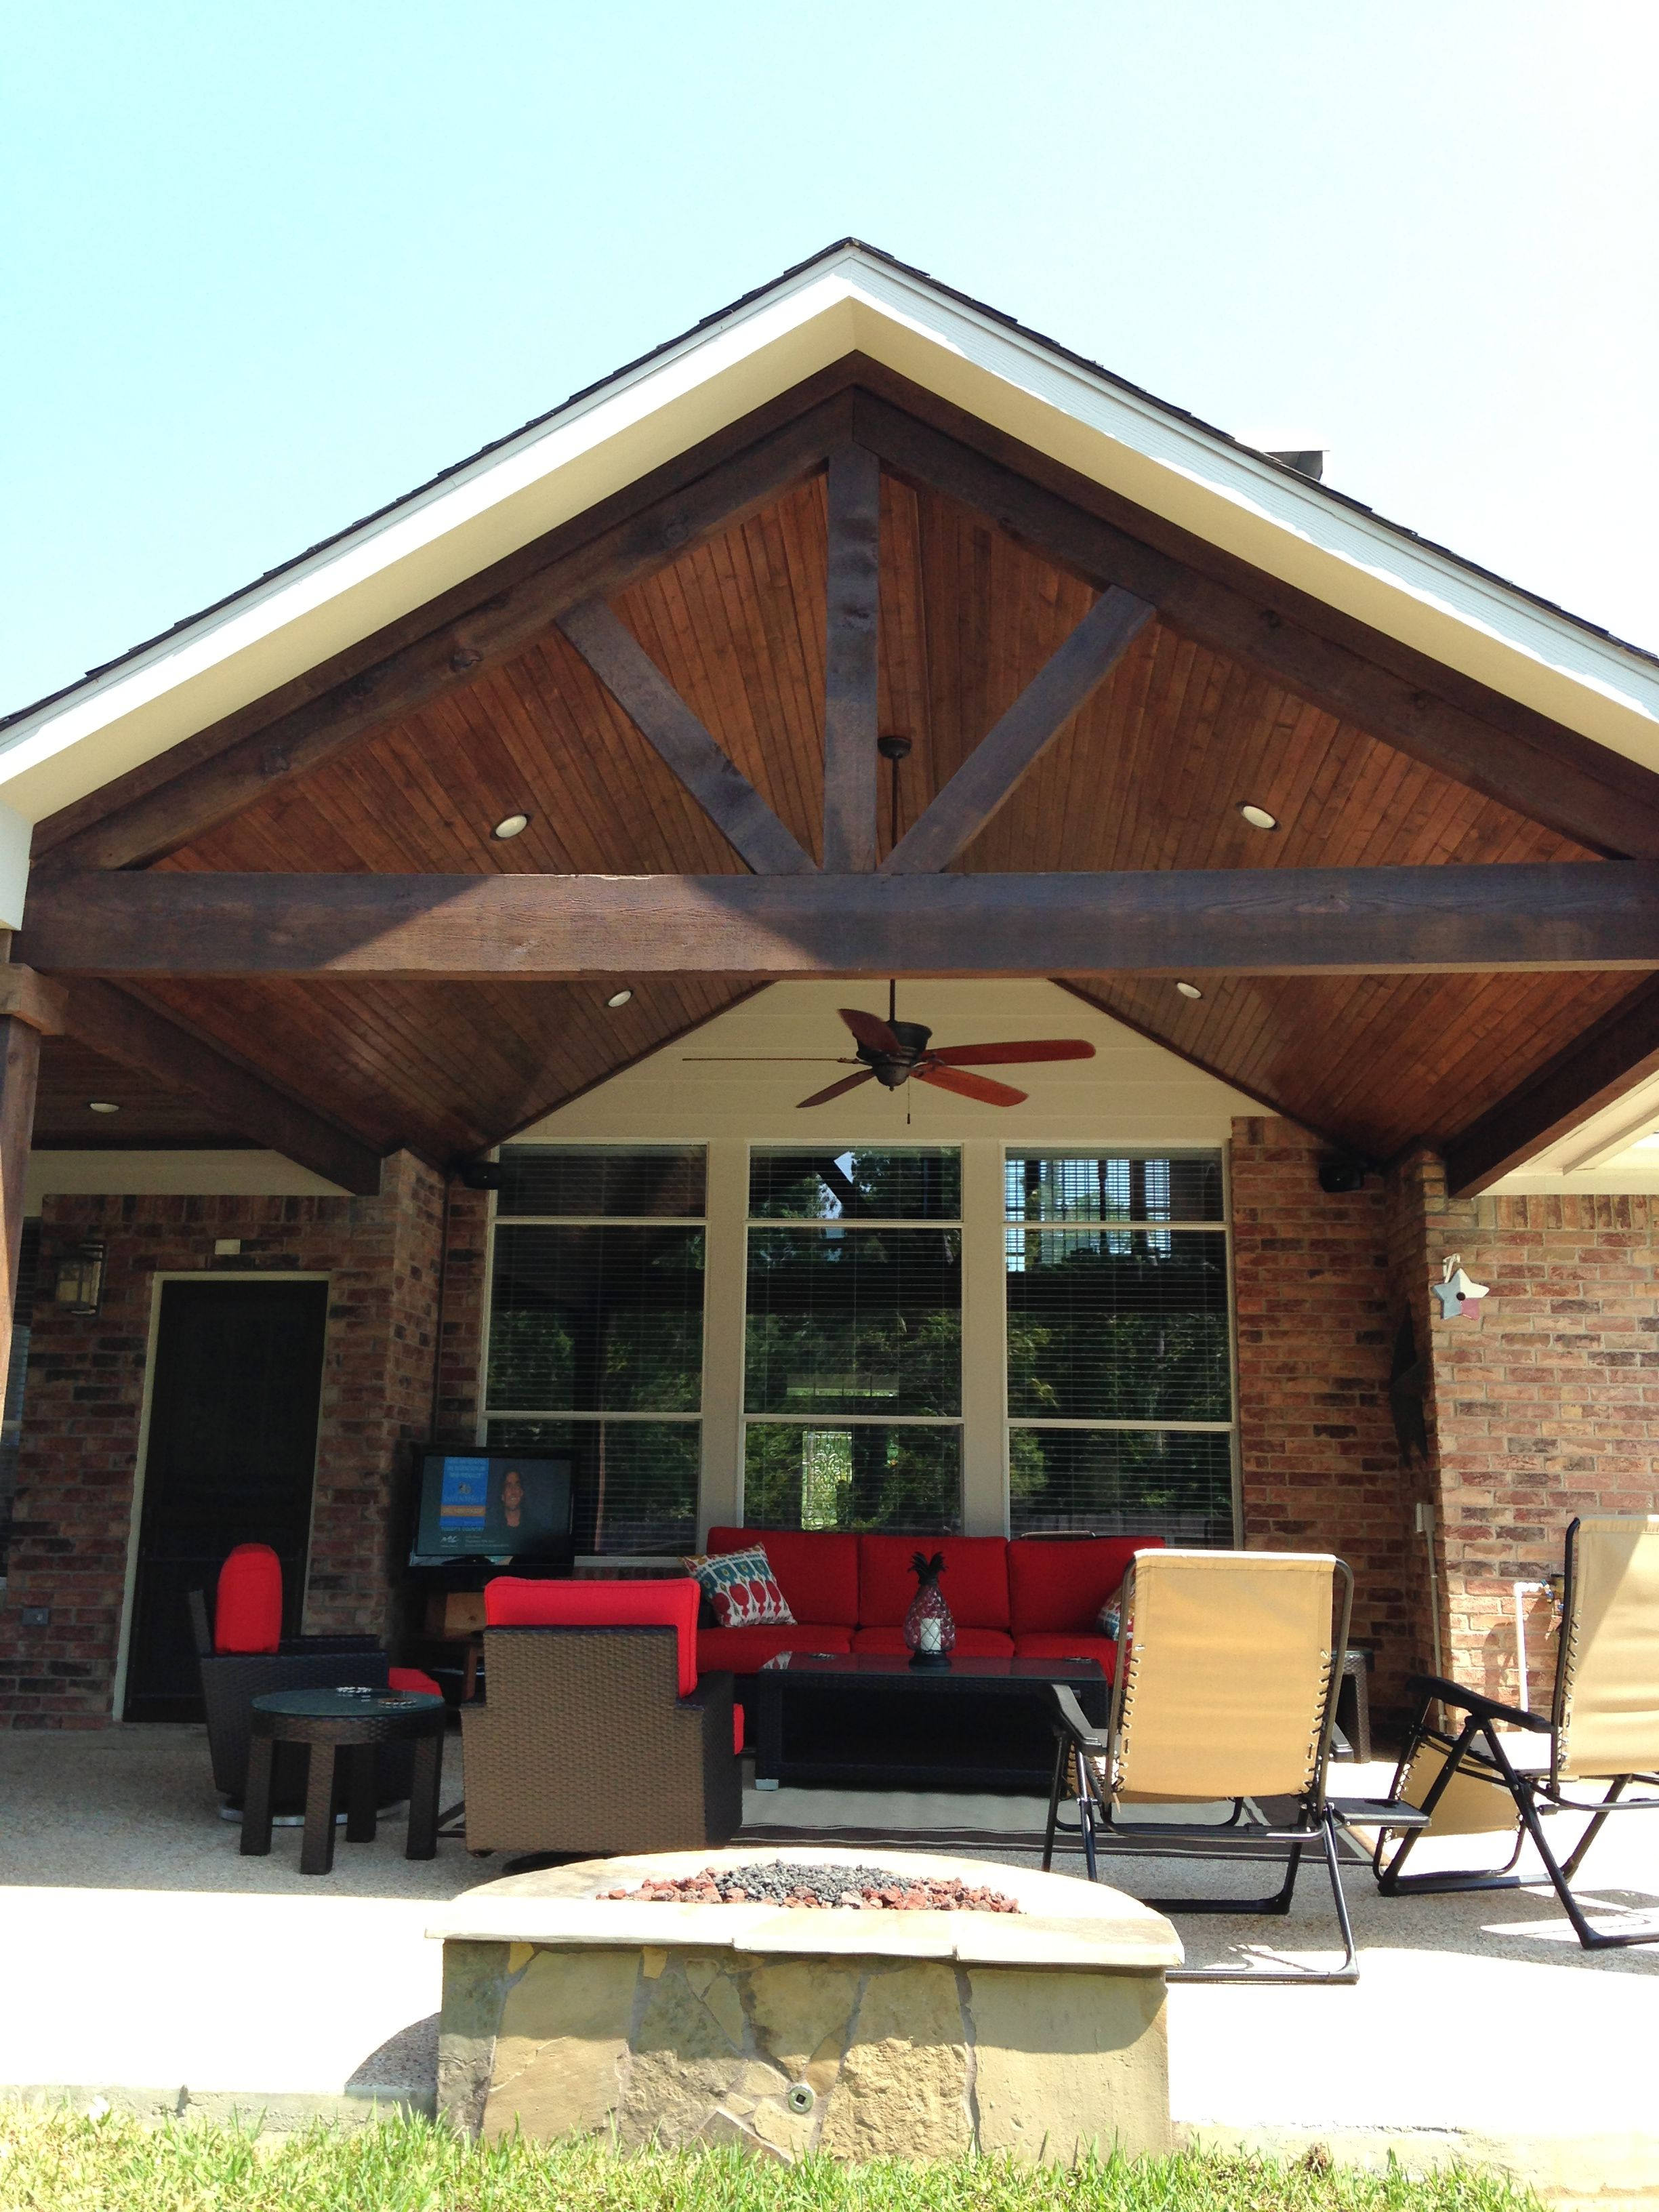 Gable Roof Patio Cover Attached To Existing House With Cedar Beams And  Posts, And Wood Stained Ceiling   Yelp